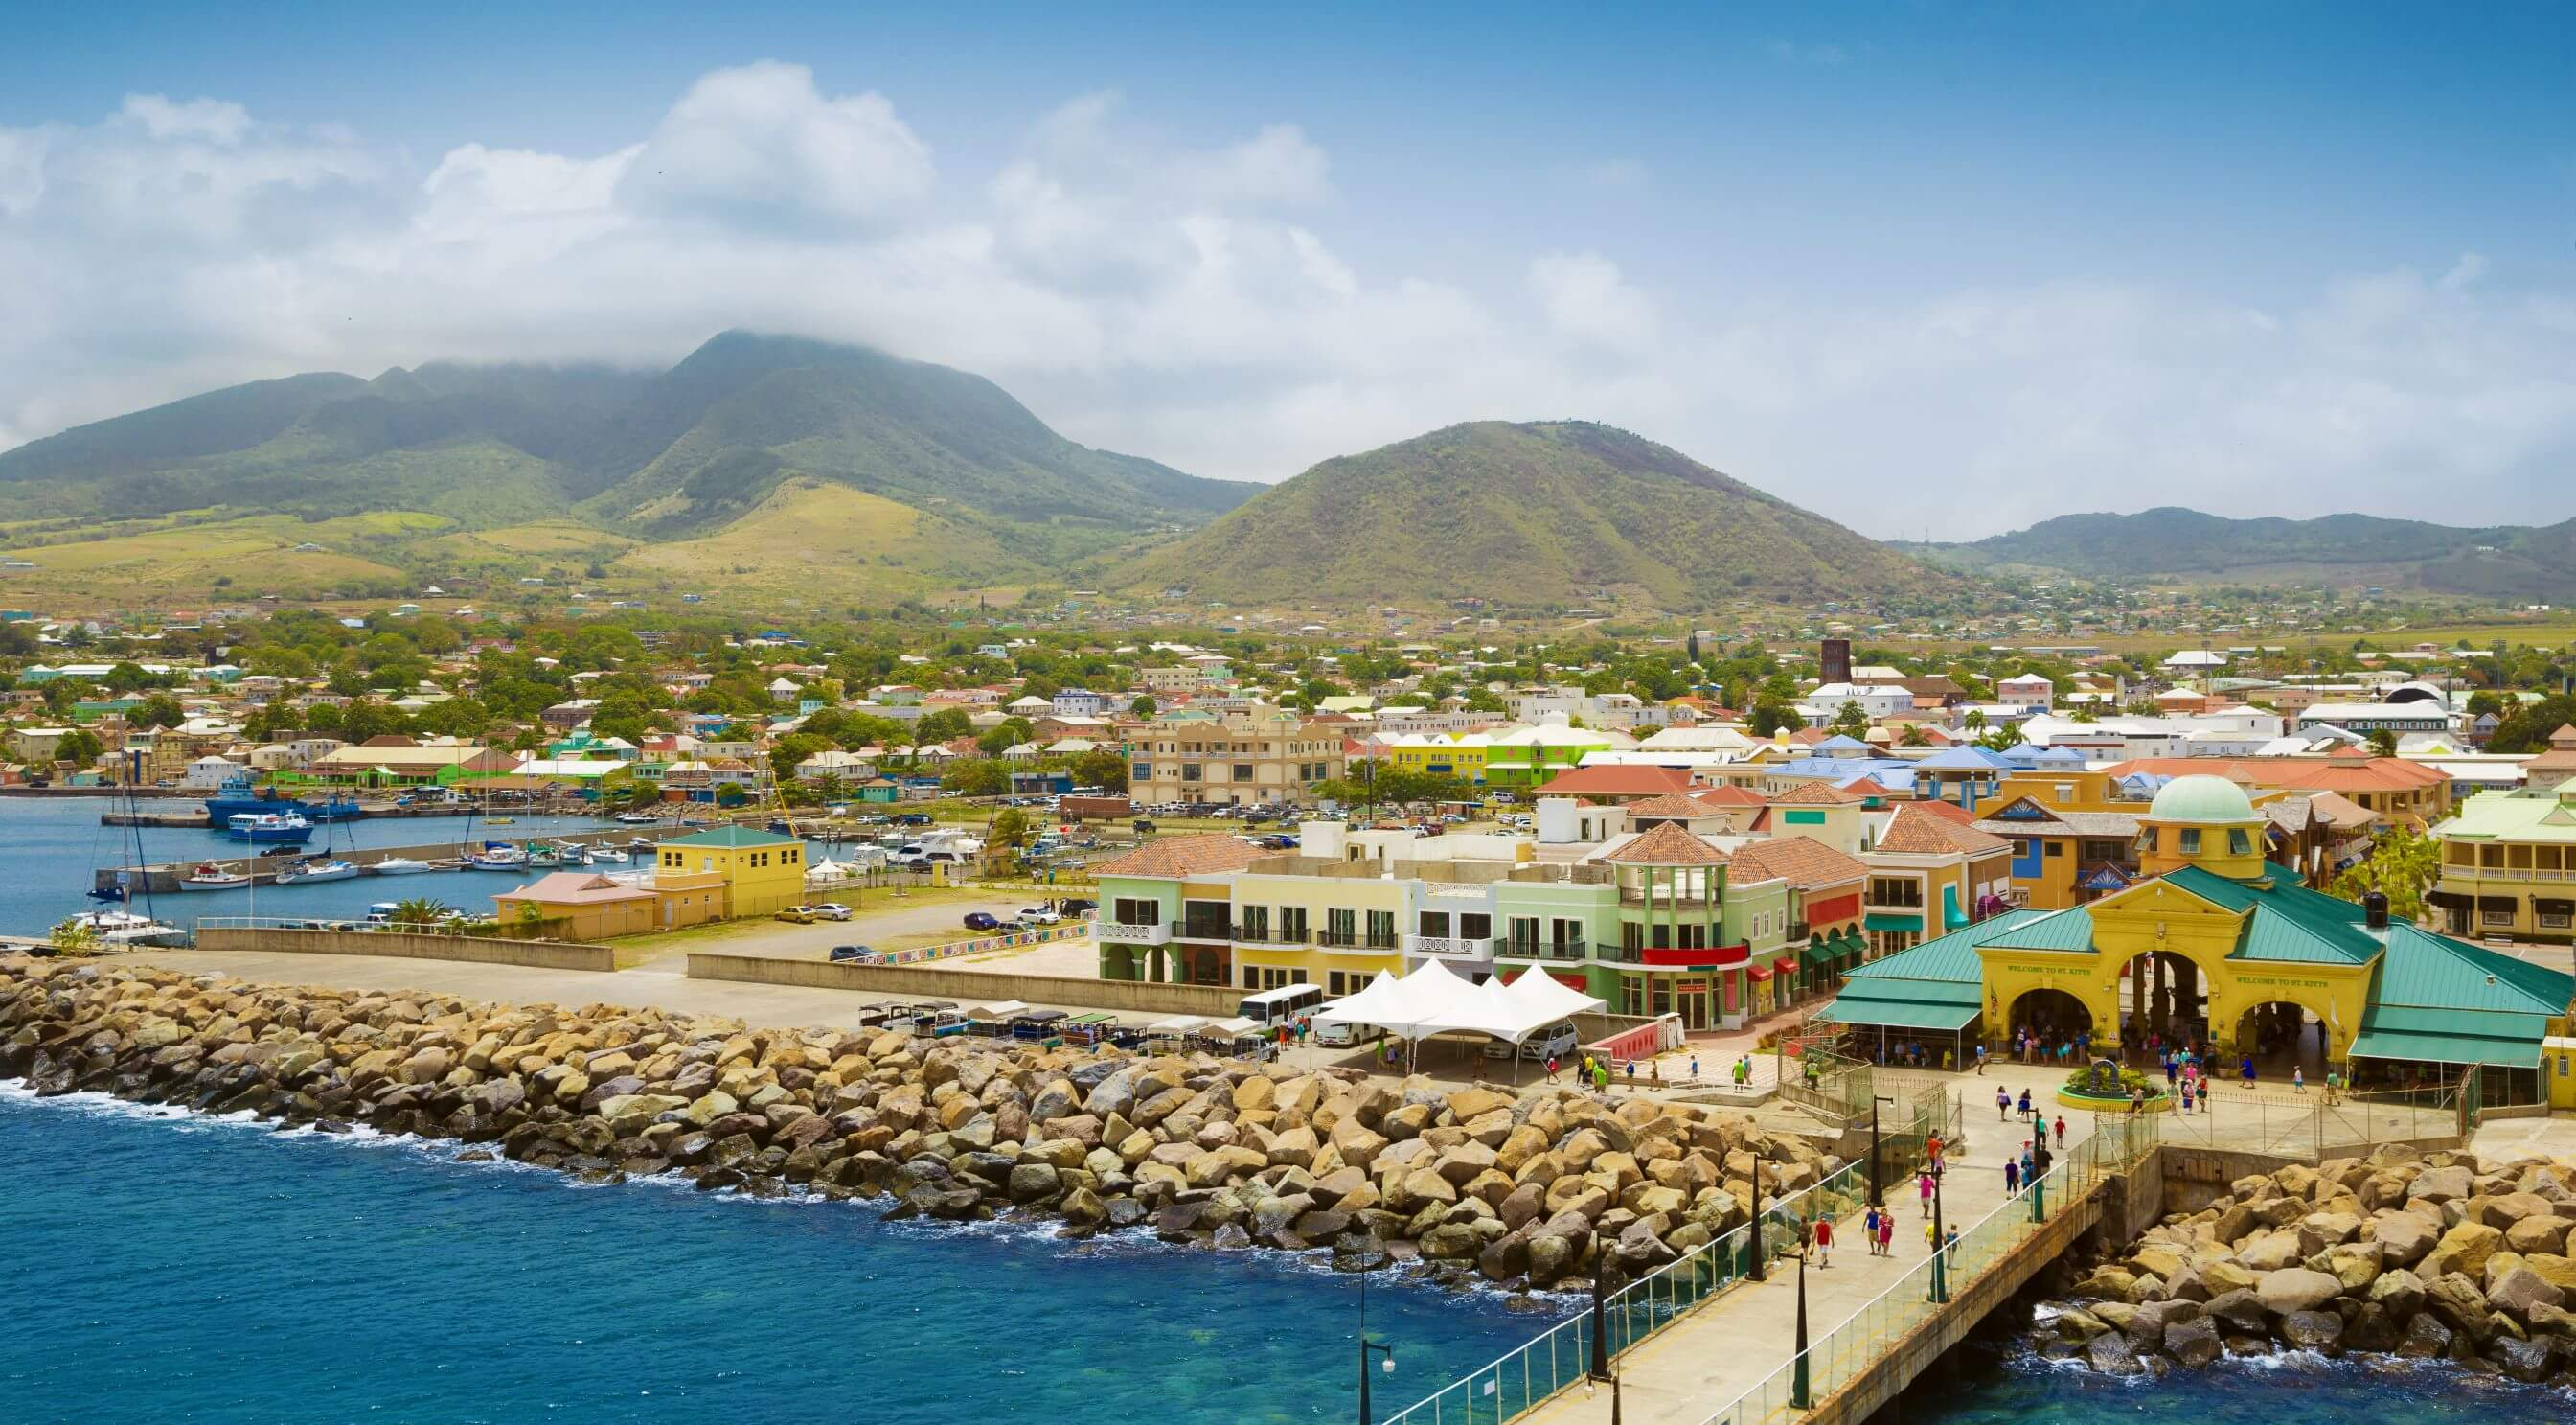 Port Zante in Basseterrre town, St. Kitts and Nevis